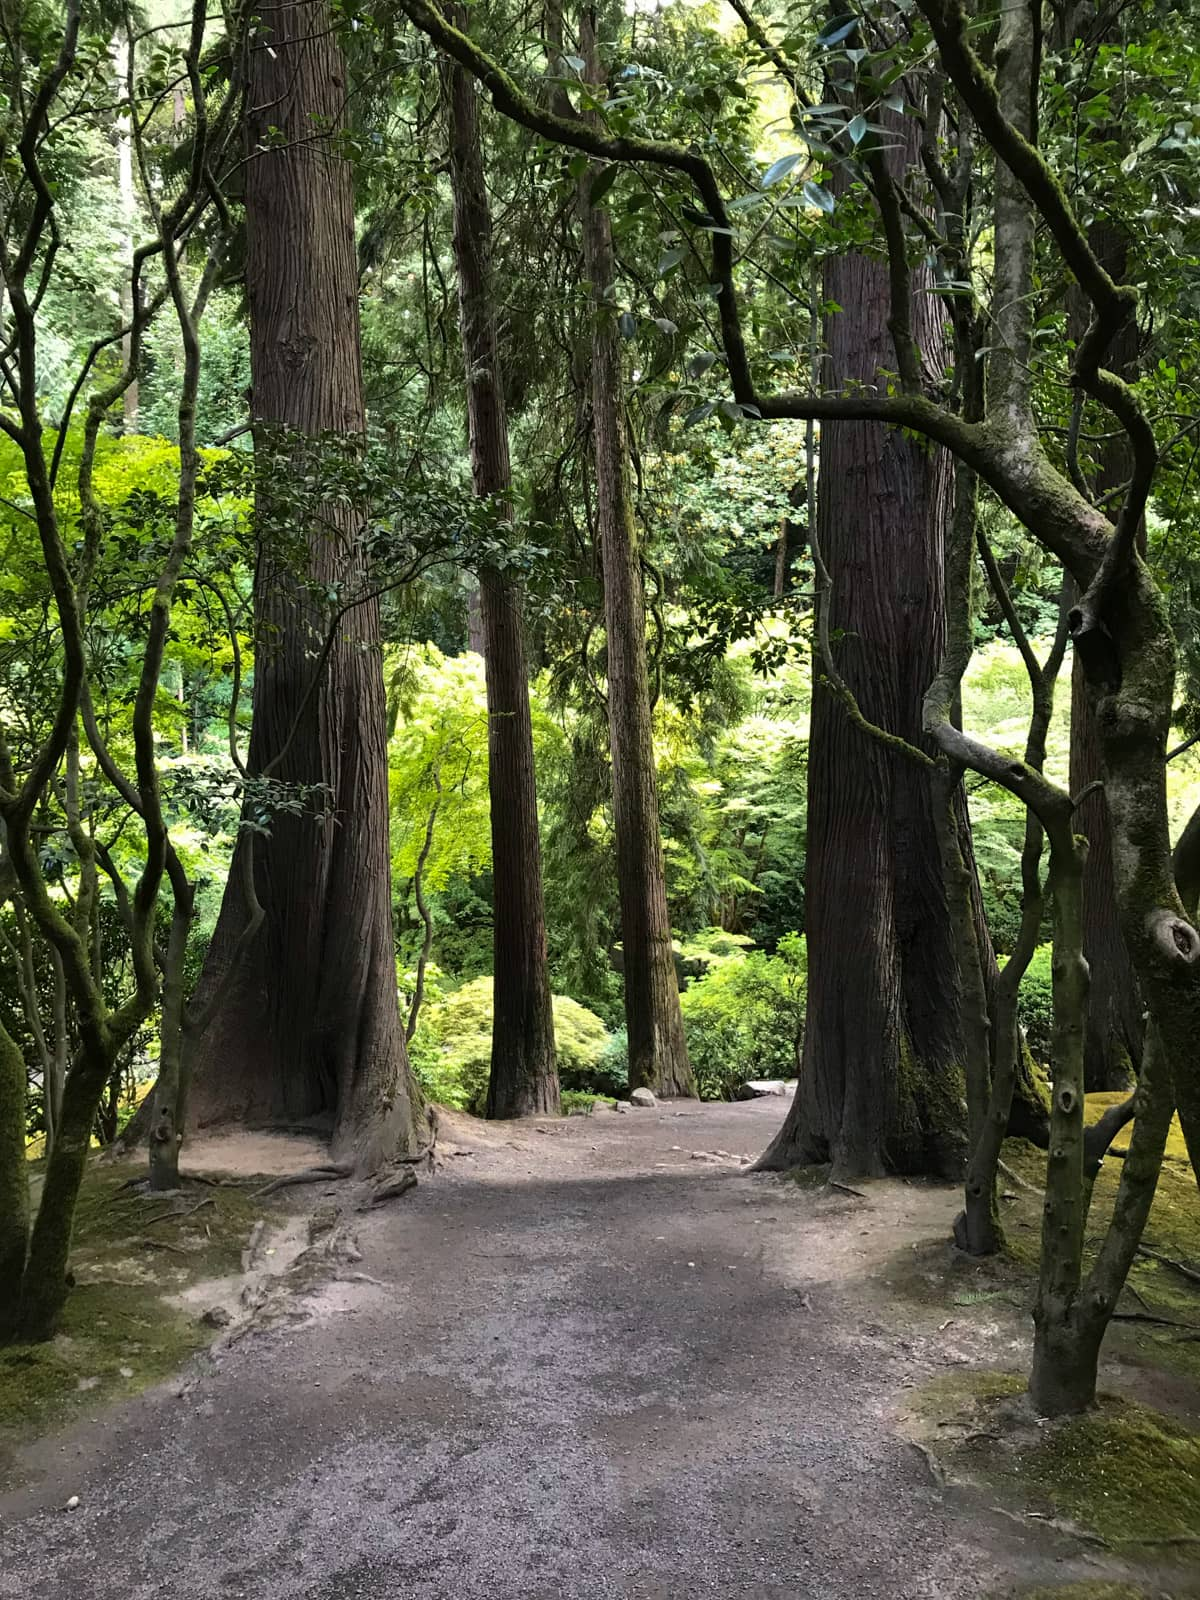 A path between the tall trunks of many trees, resembling a forest